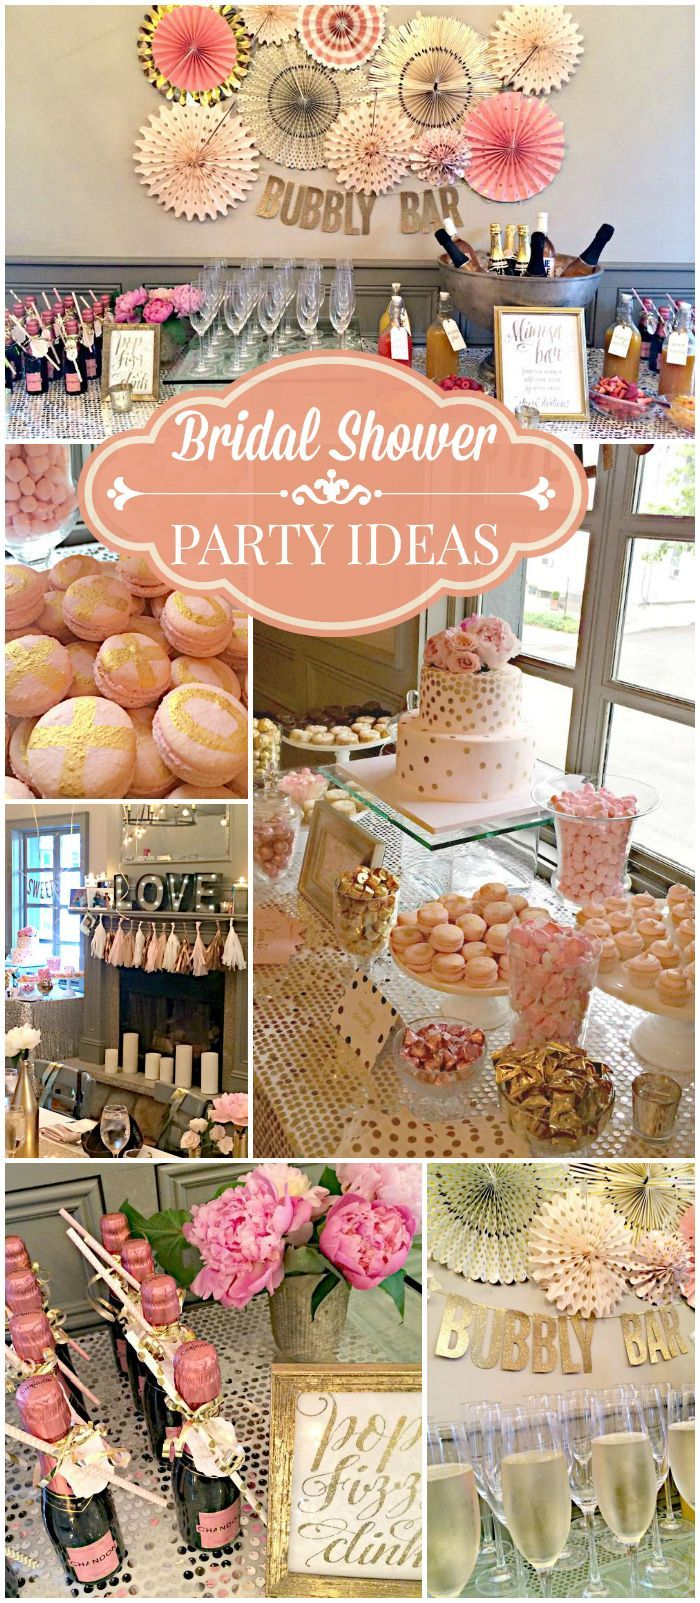 Pinterest wedding shower - Best 25 Wedding Showers Ideas On Pinterest Bridal Games Bridal Party Games And Shower Games